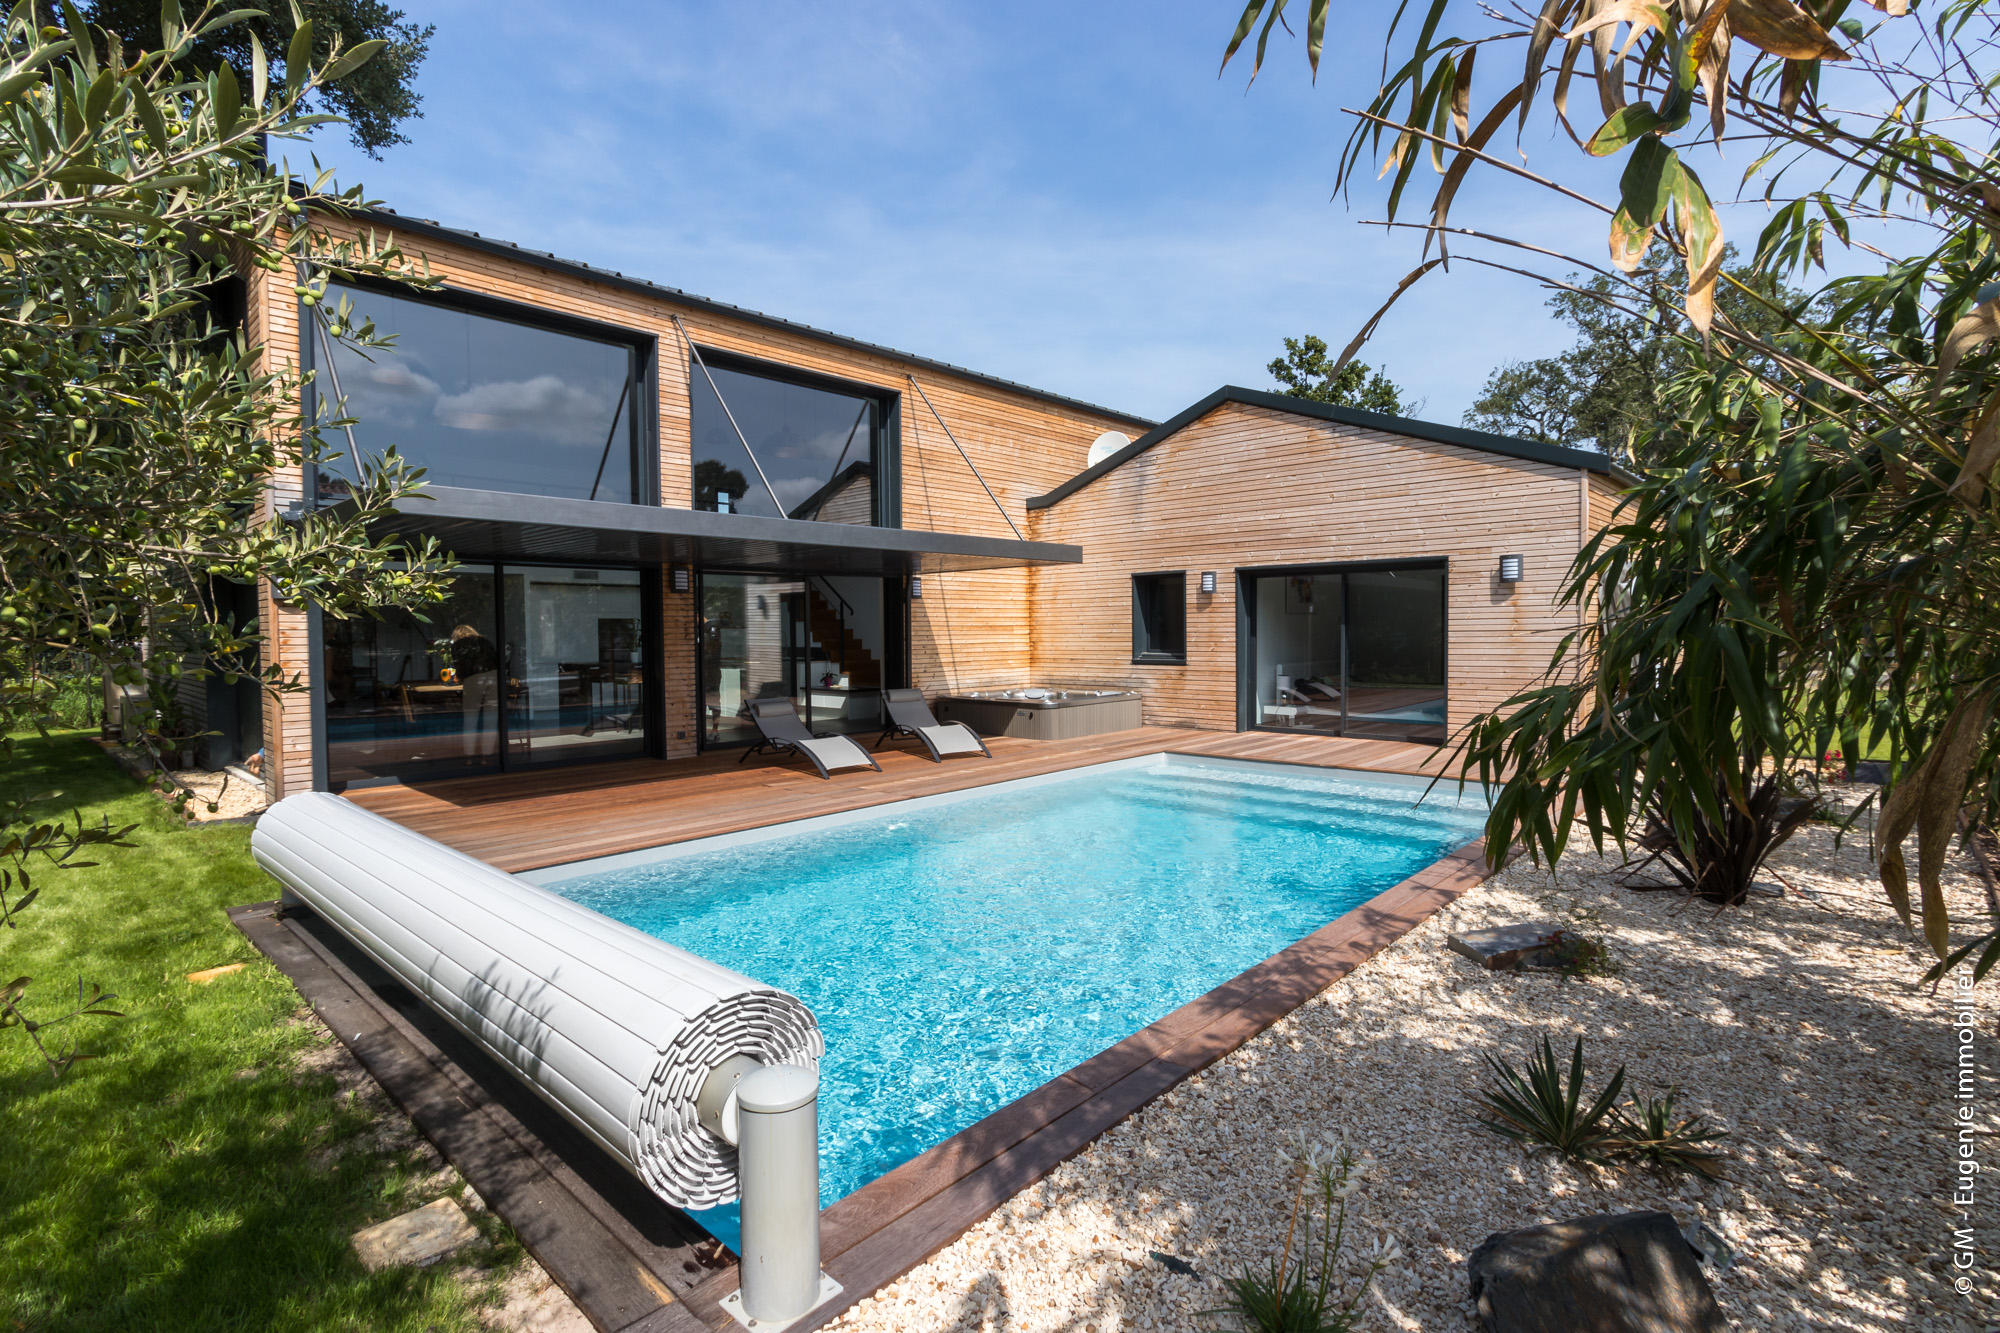 Maison d'Architecte Contemporaine de 188 m²